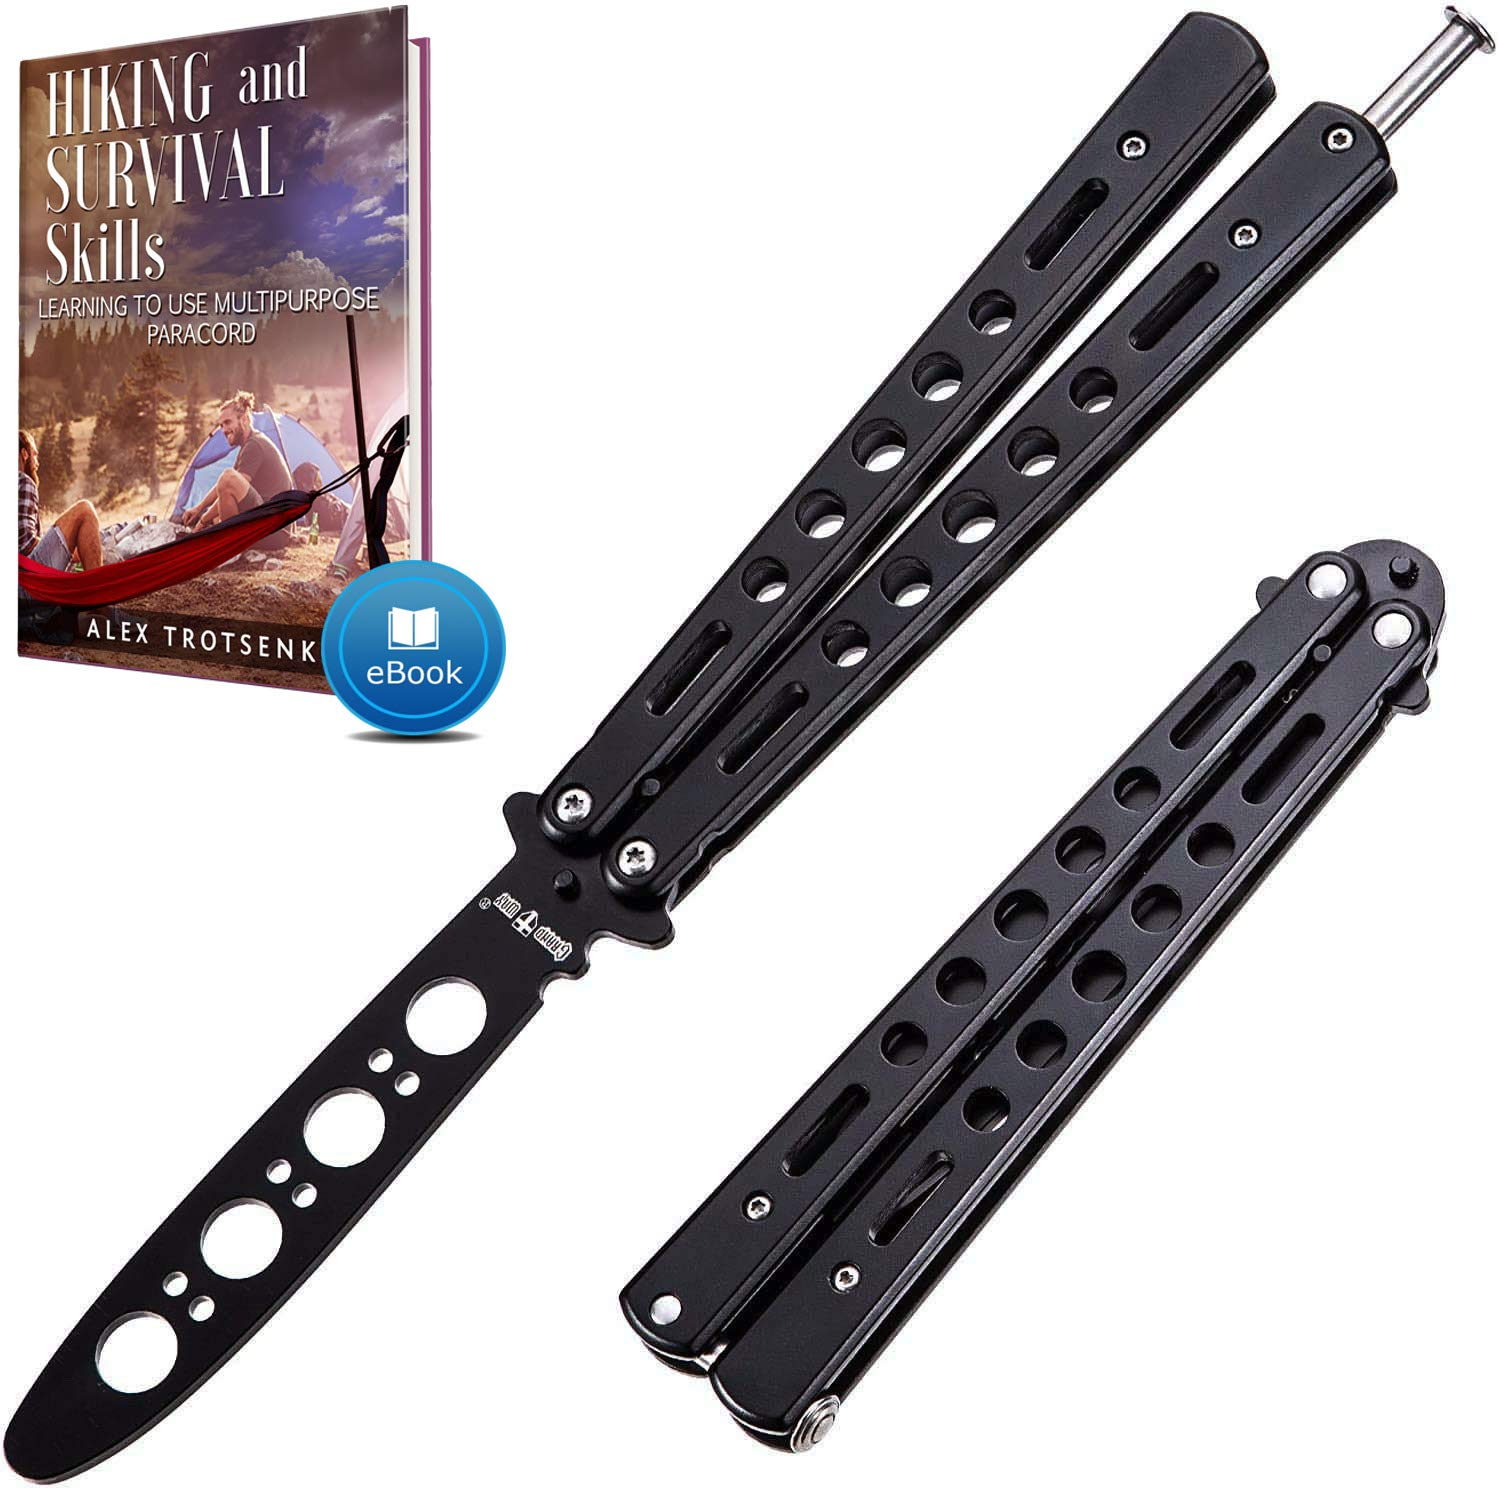 Butterfly Knife Trainer - Balisong Trainer - Practice Butterfly Knife - Balisong Butterfly Knives NOT Real NOT Sharp Blade - Black Dull Trick Butterfly Knifes - Butter Fly Knife Training CSGO K10-B